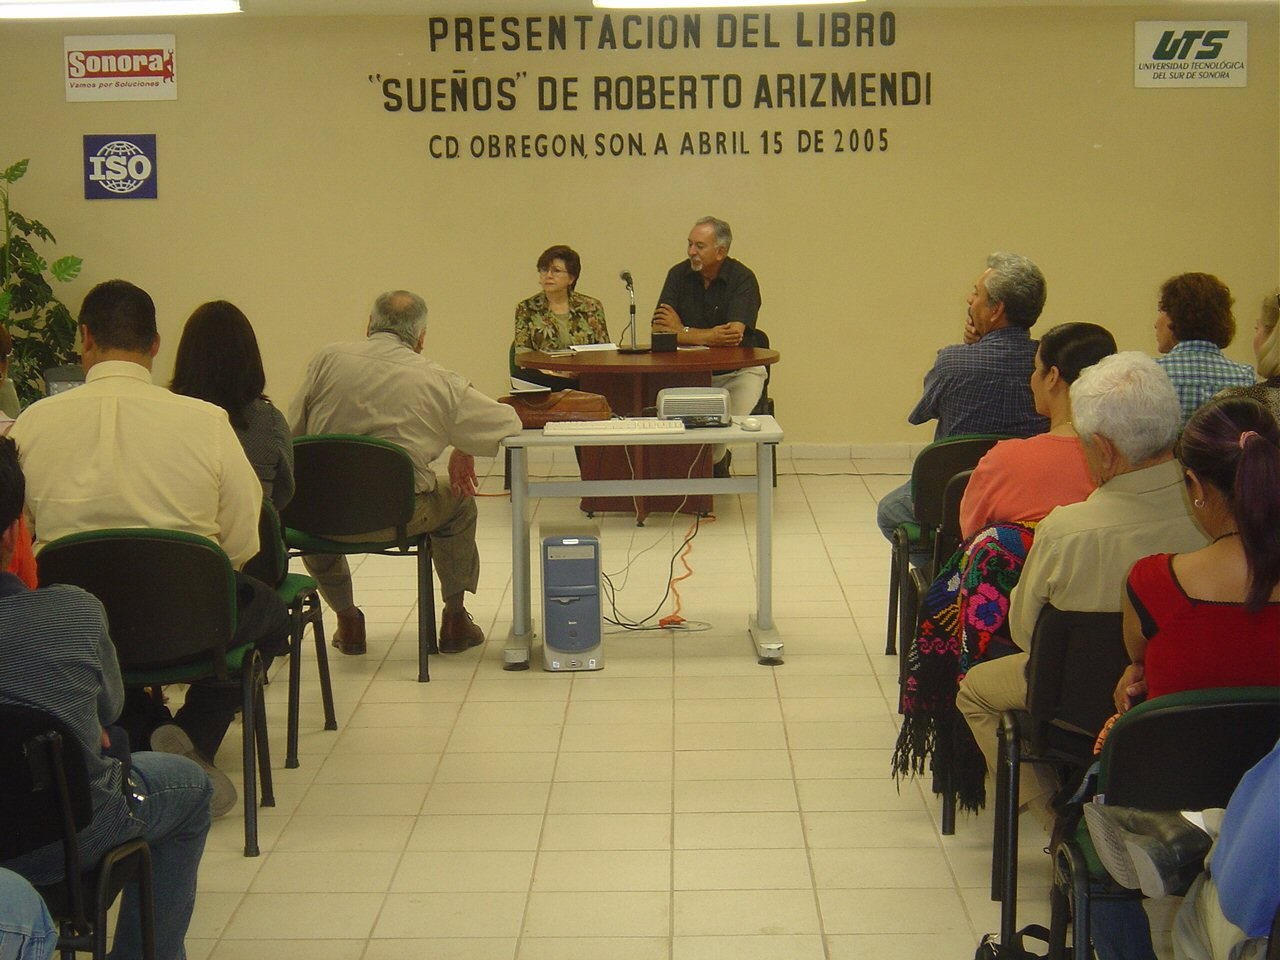 ciudad obregon men Meet ciudad obregón men interested in friendship there are 1000s of profiles to view for free at mexicancupidcom - join today.